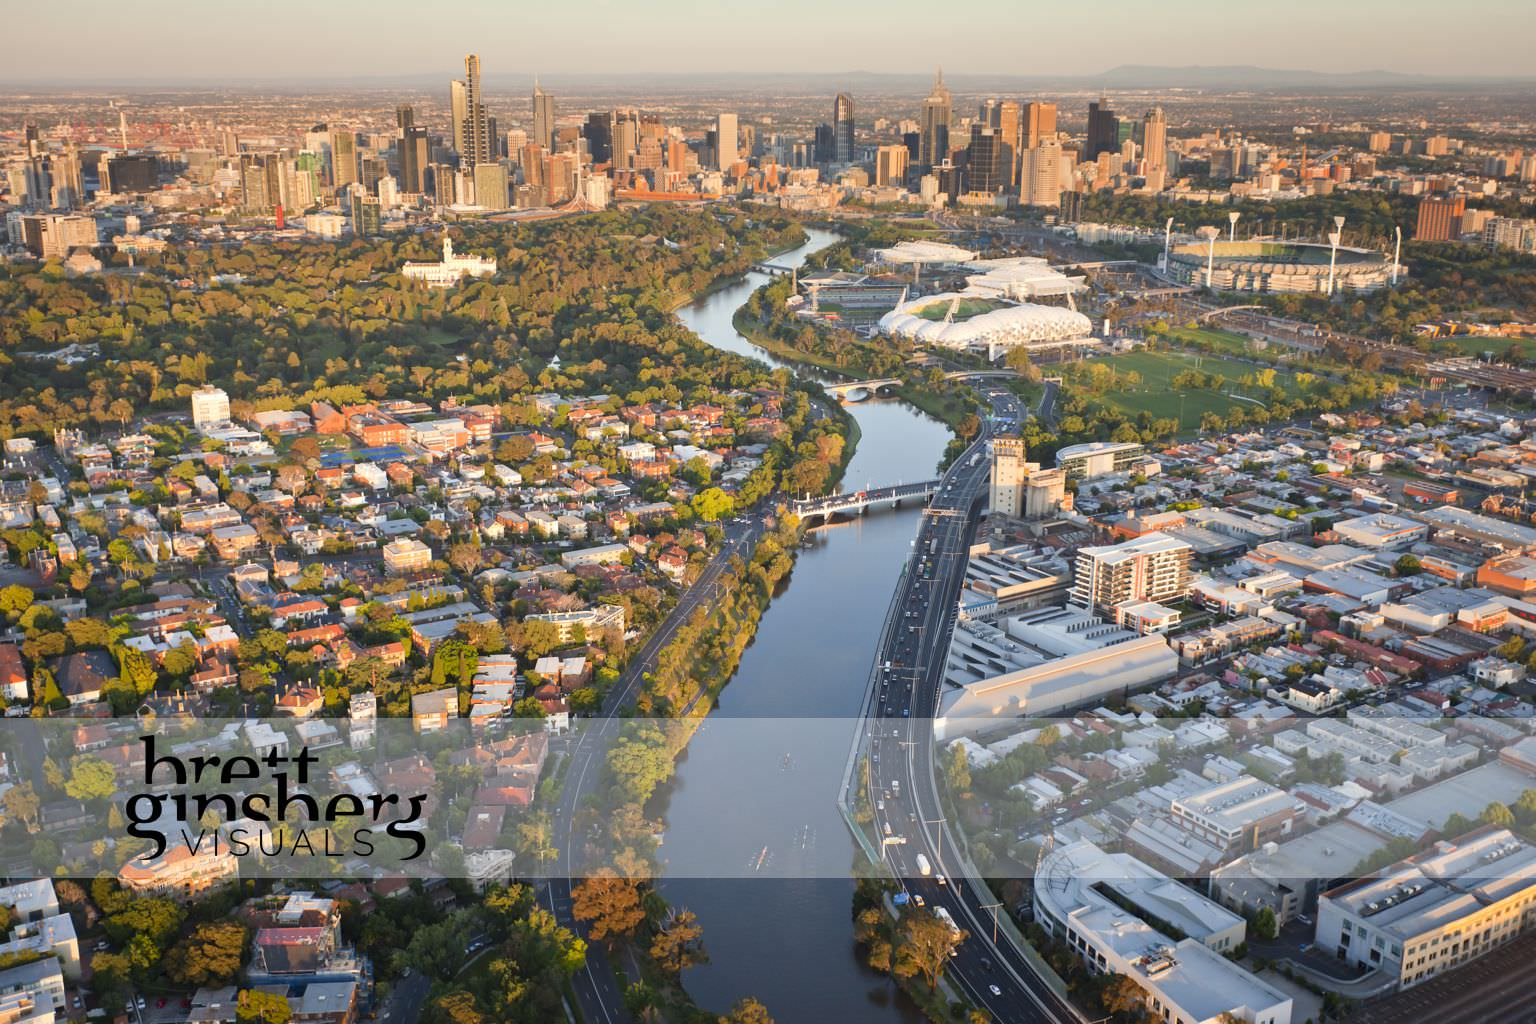 aerial drone photograph of yarra river and melbourne cbd